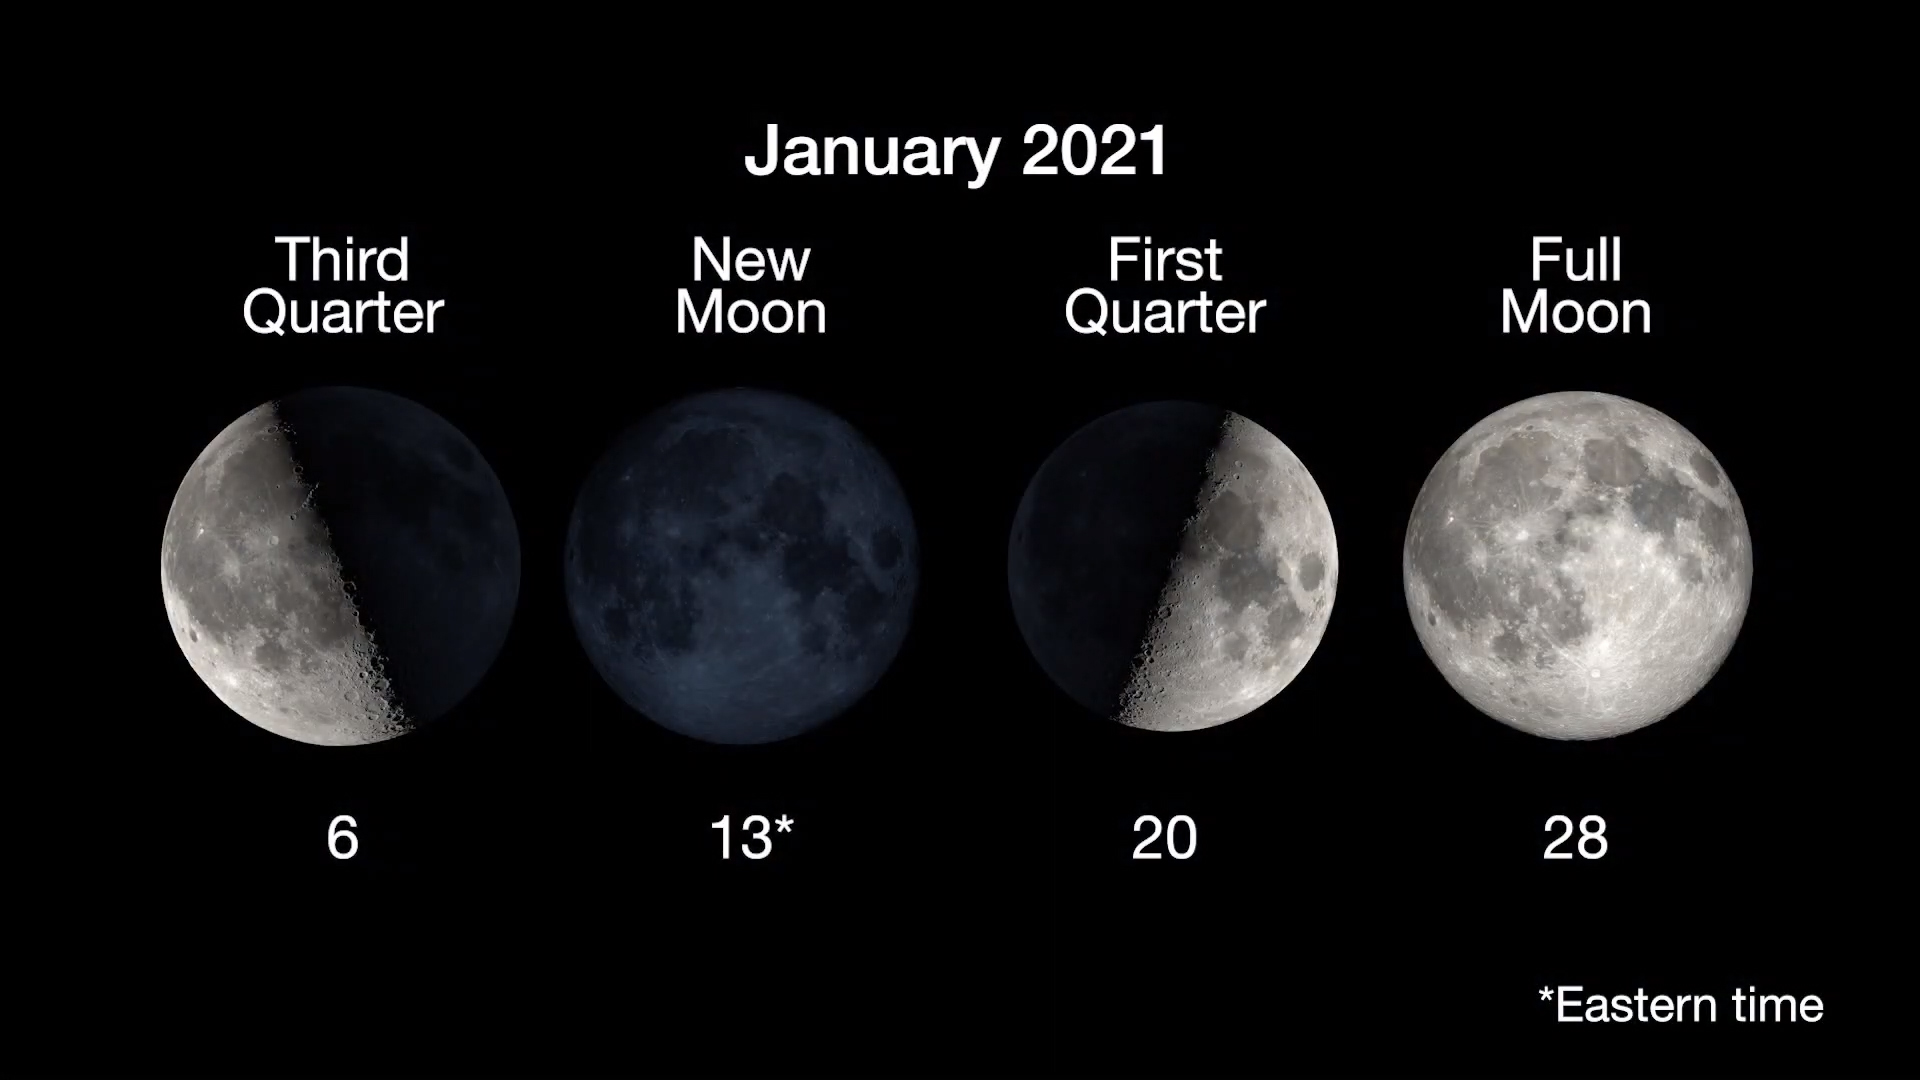 MoonPhases_Jan2021